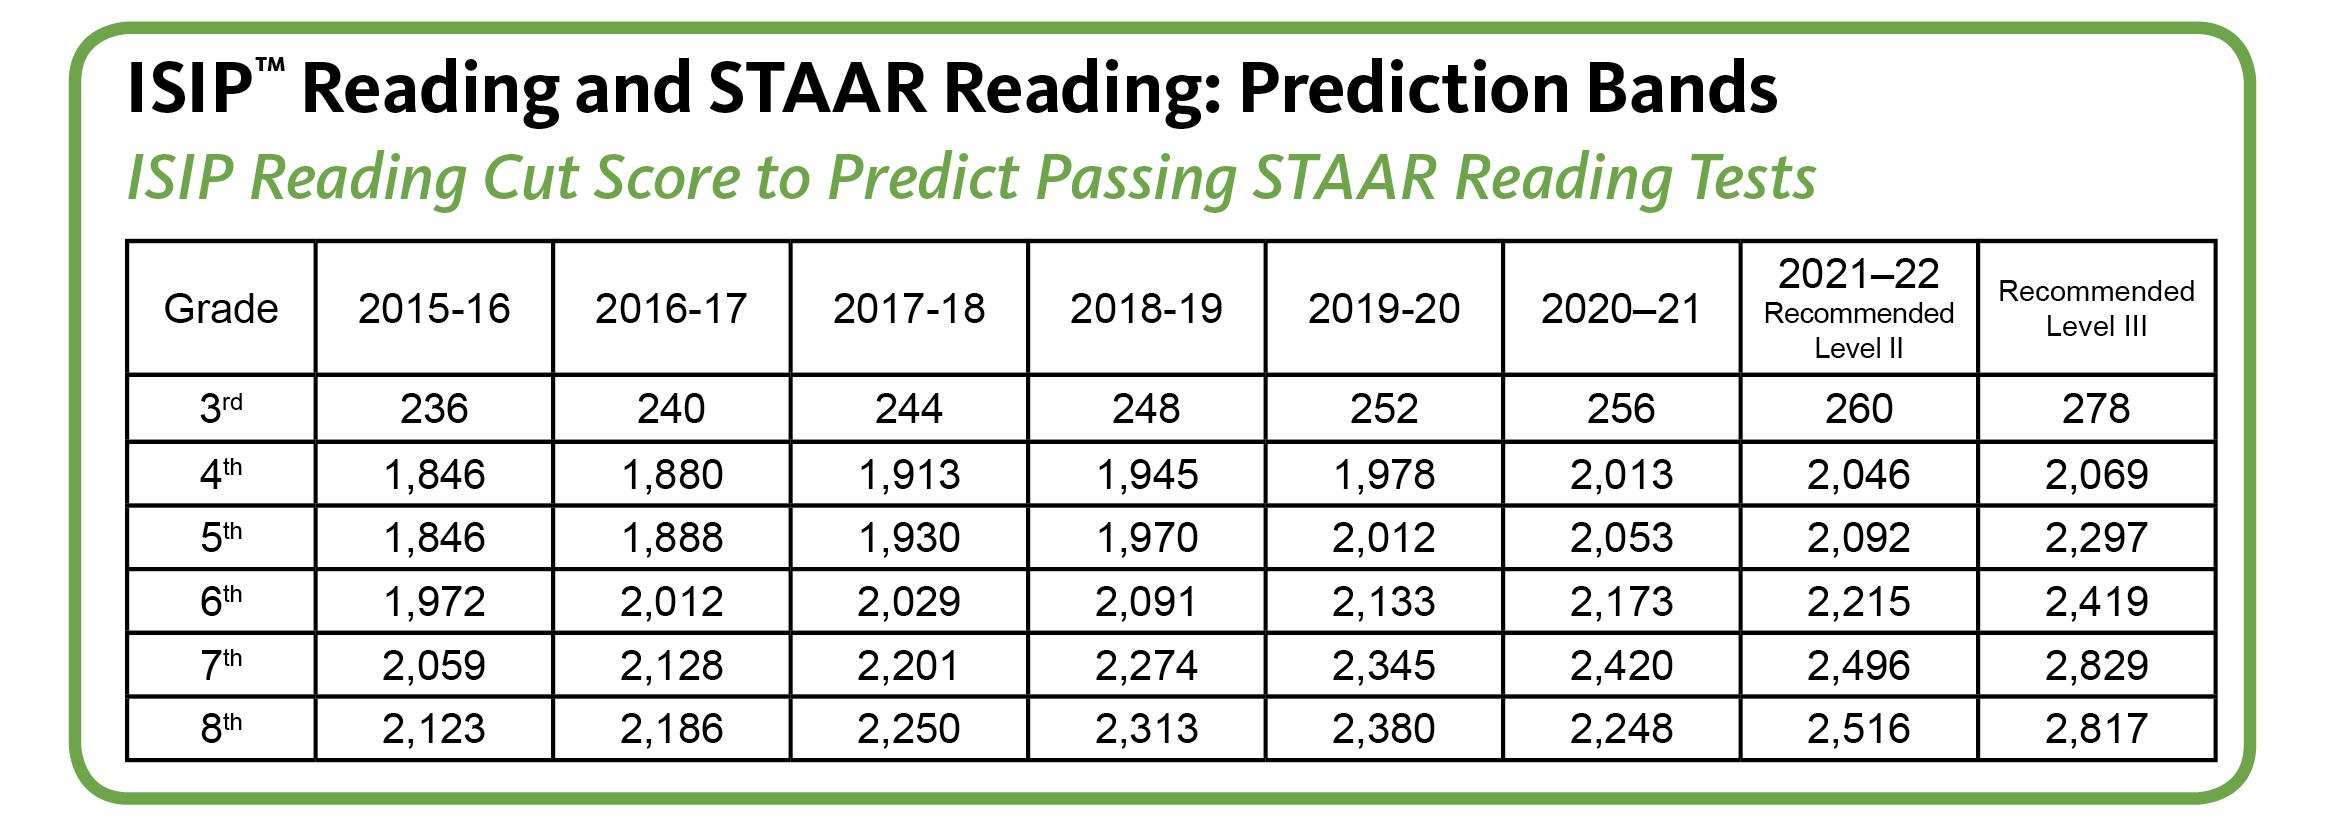 staar.table3.16.16.png